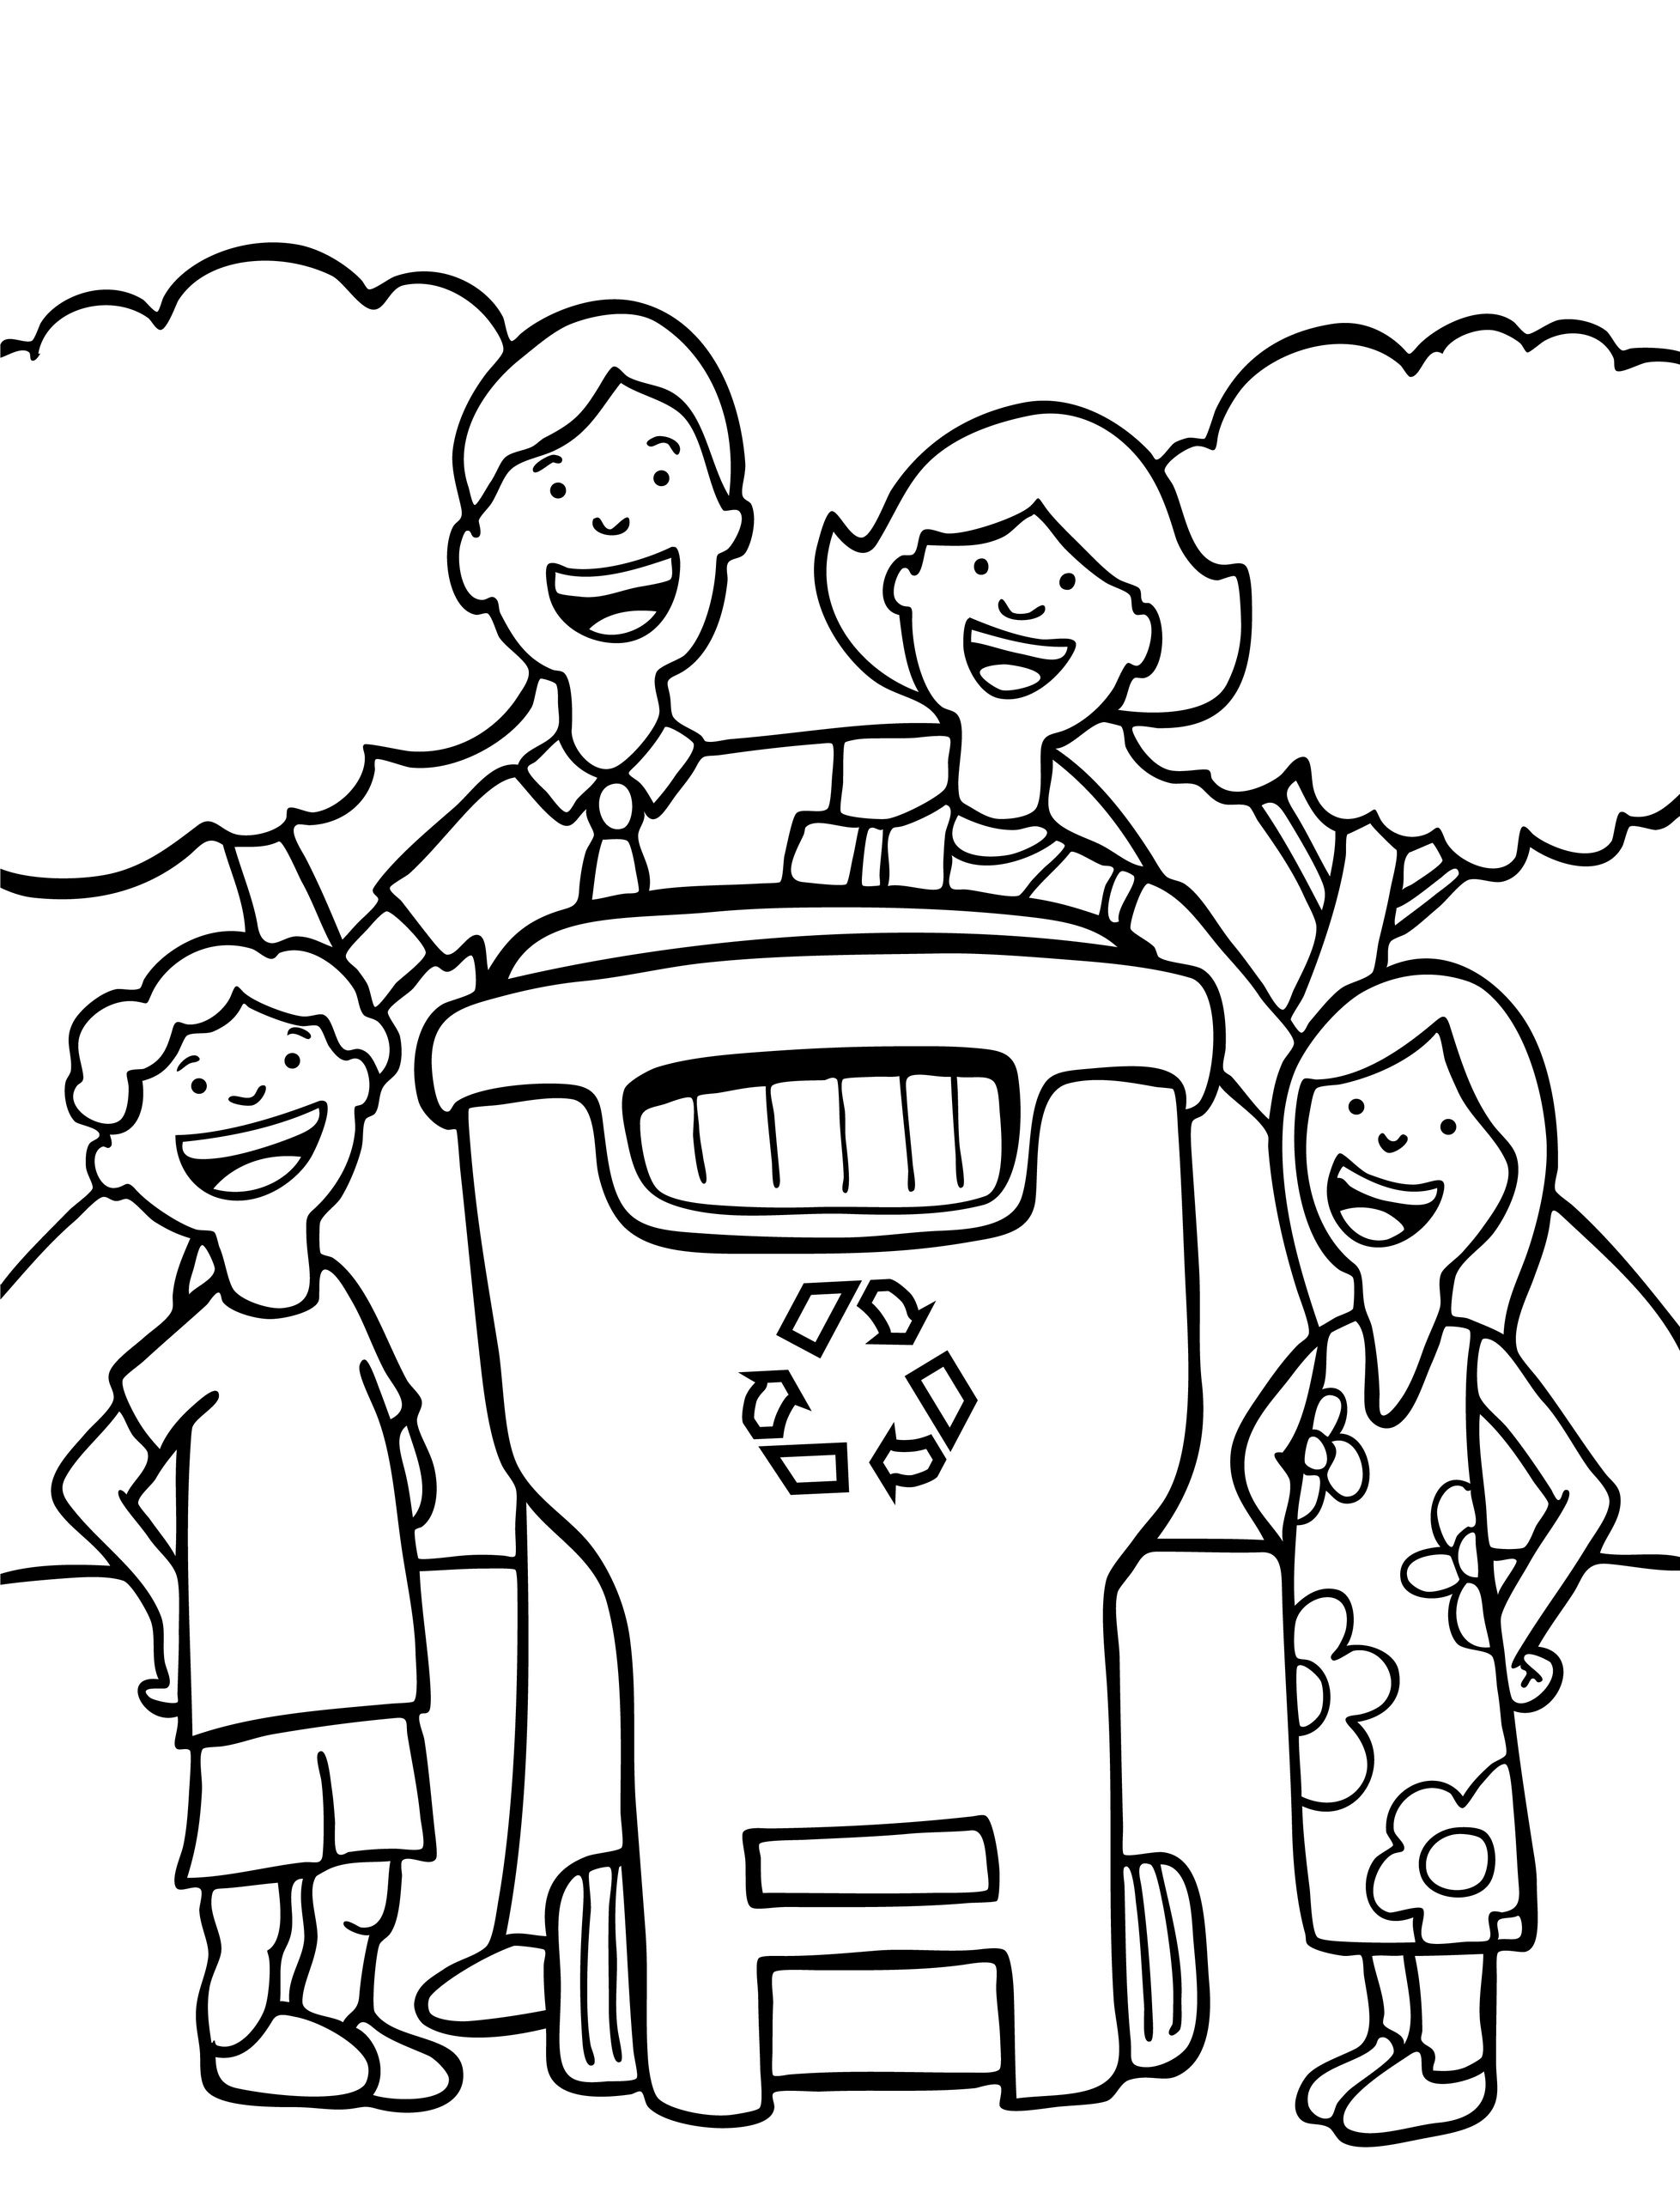 Free Earth Day Coloring Page For Children Let S Recycle